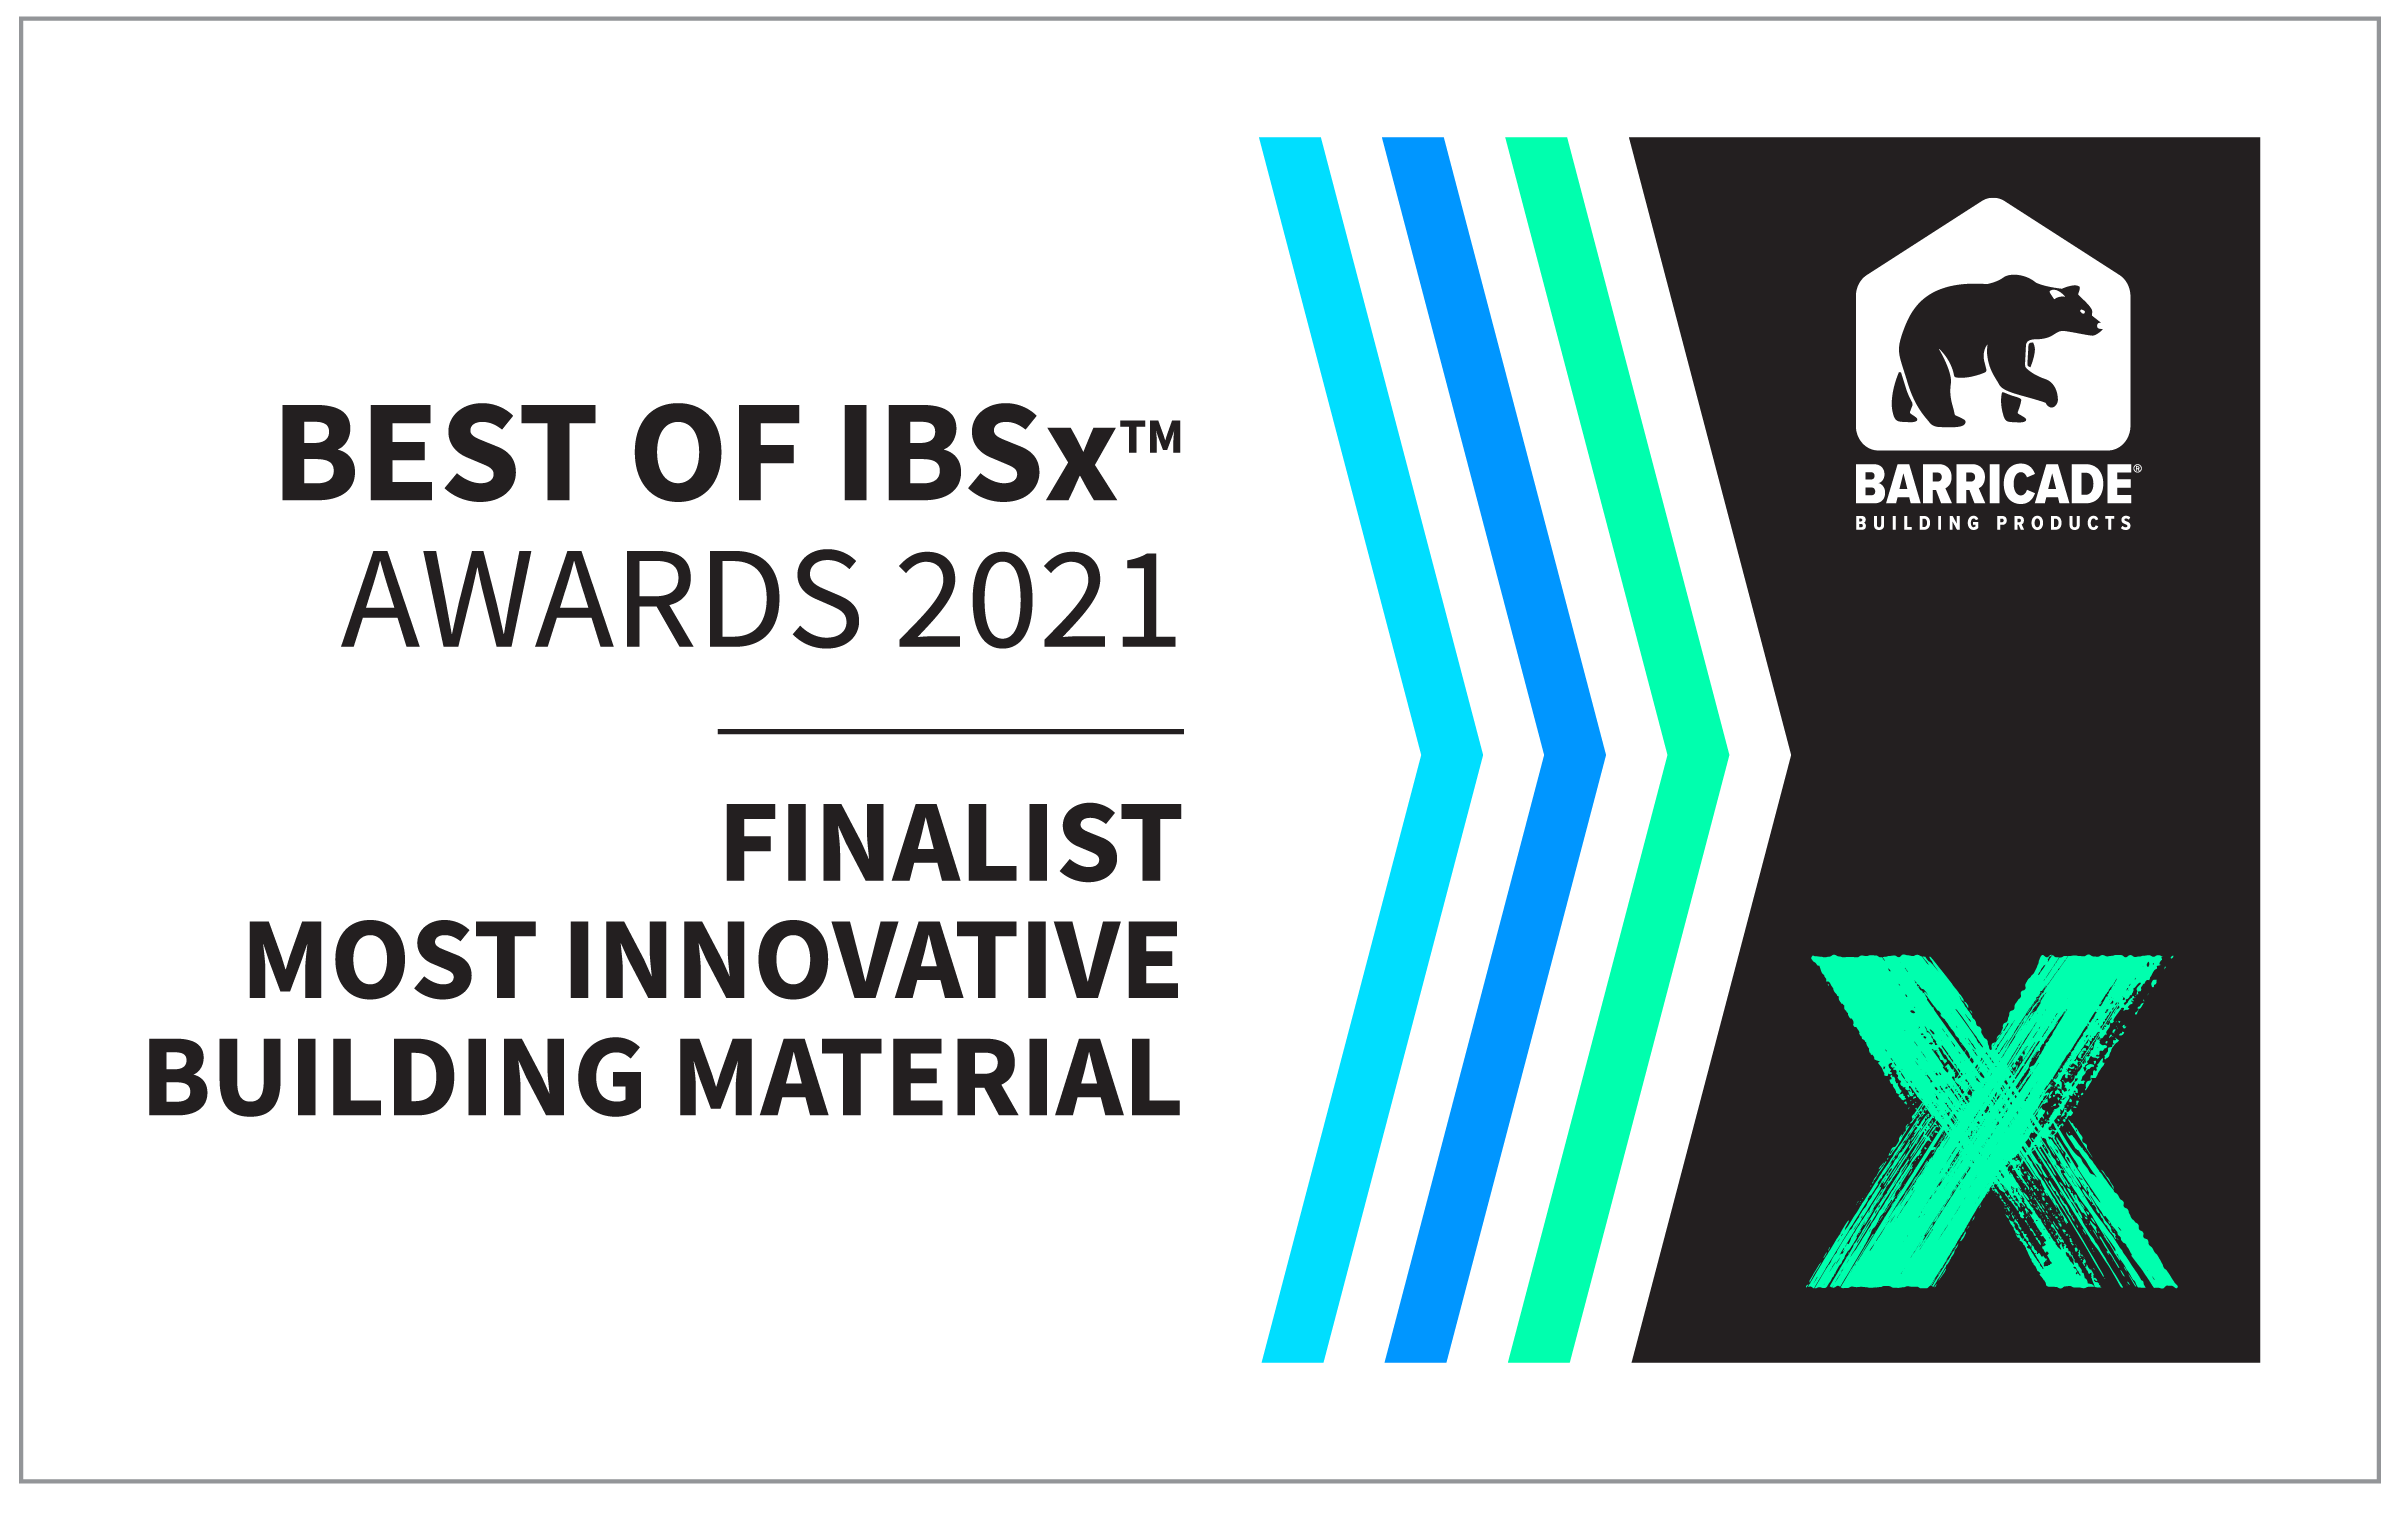 Finalist for Most Innovative Building Material in IBSx